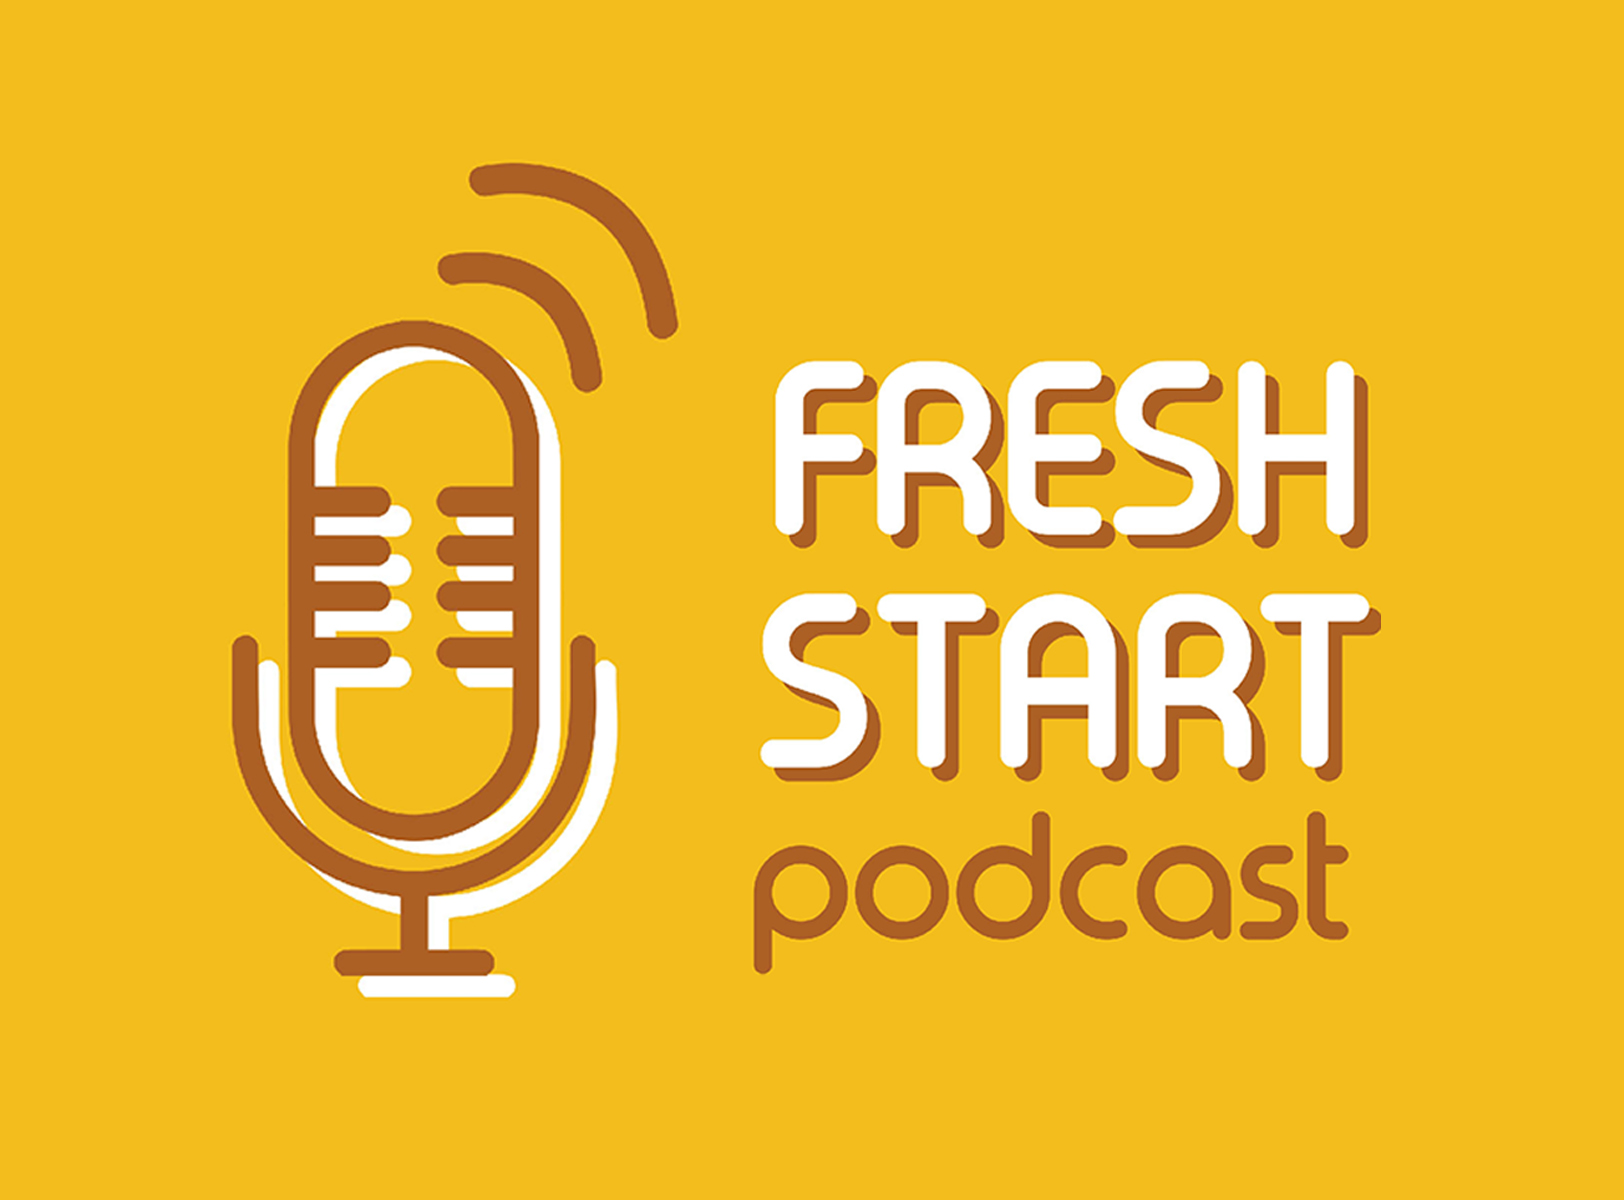 Fresh Start: Podcast News (11/29/2018 Thu.)